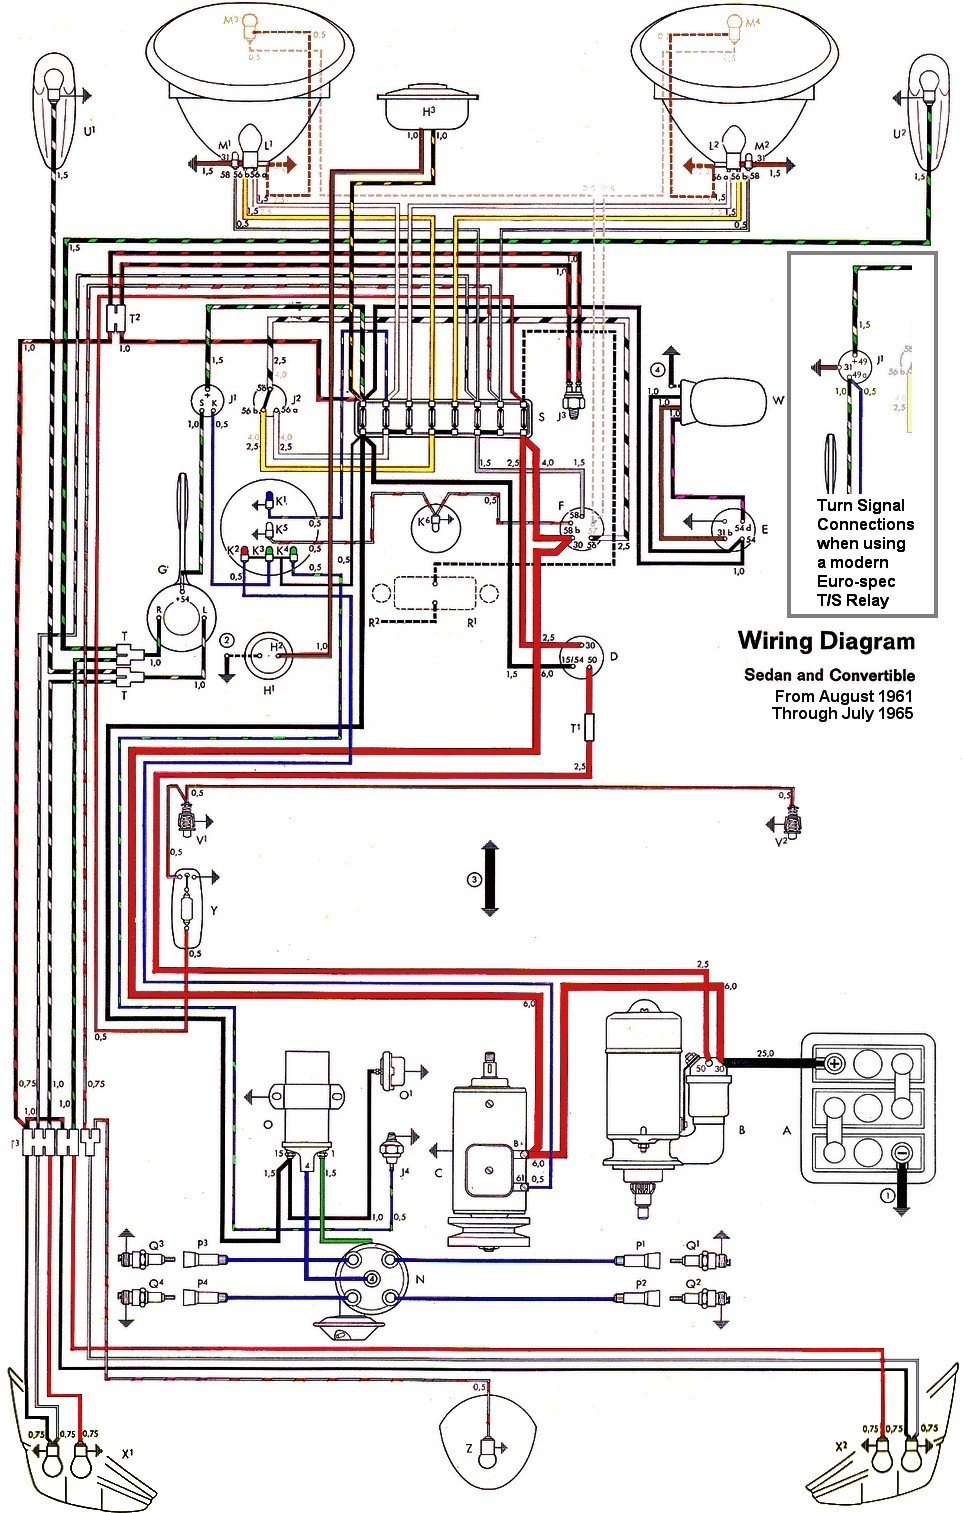 bug_62 65withinset thesamba com type 1 wiring diagrams vw wiring diagrams at readyjetset.co